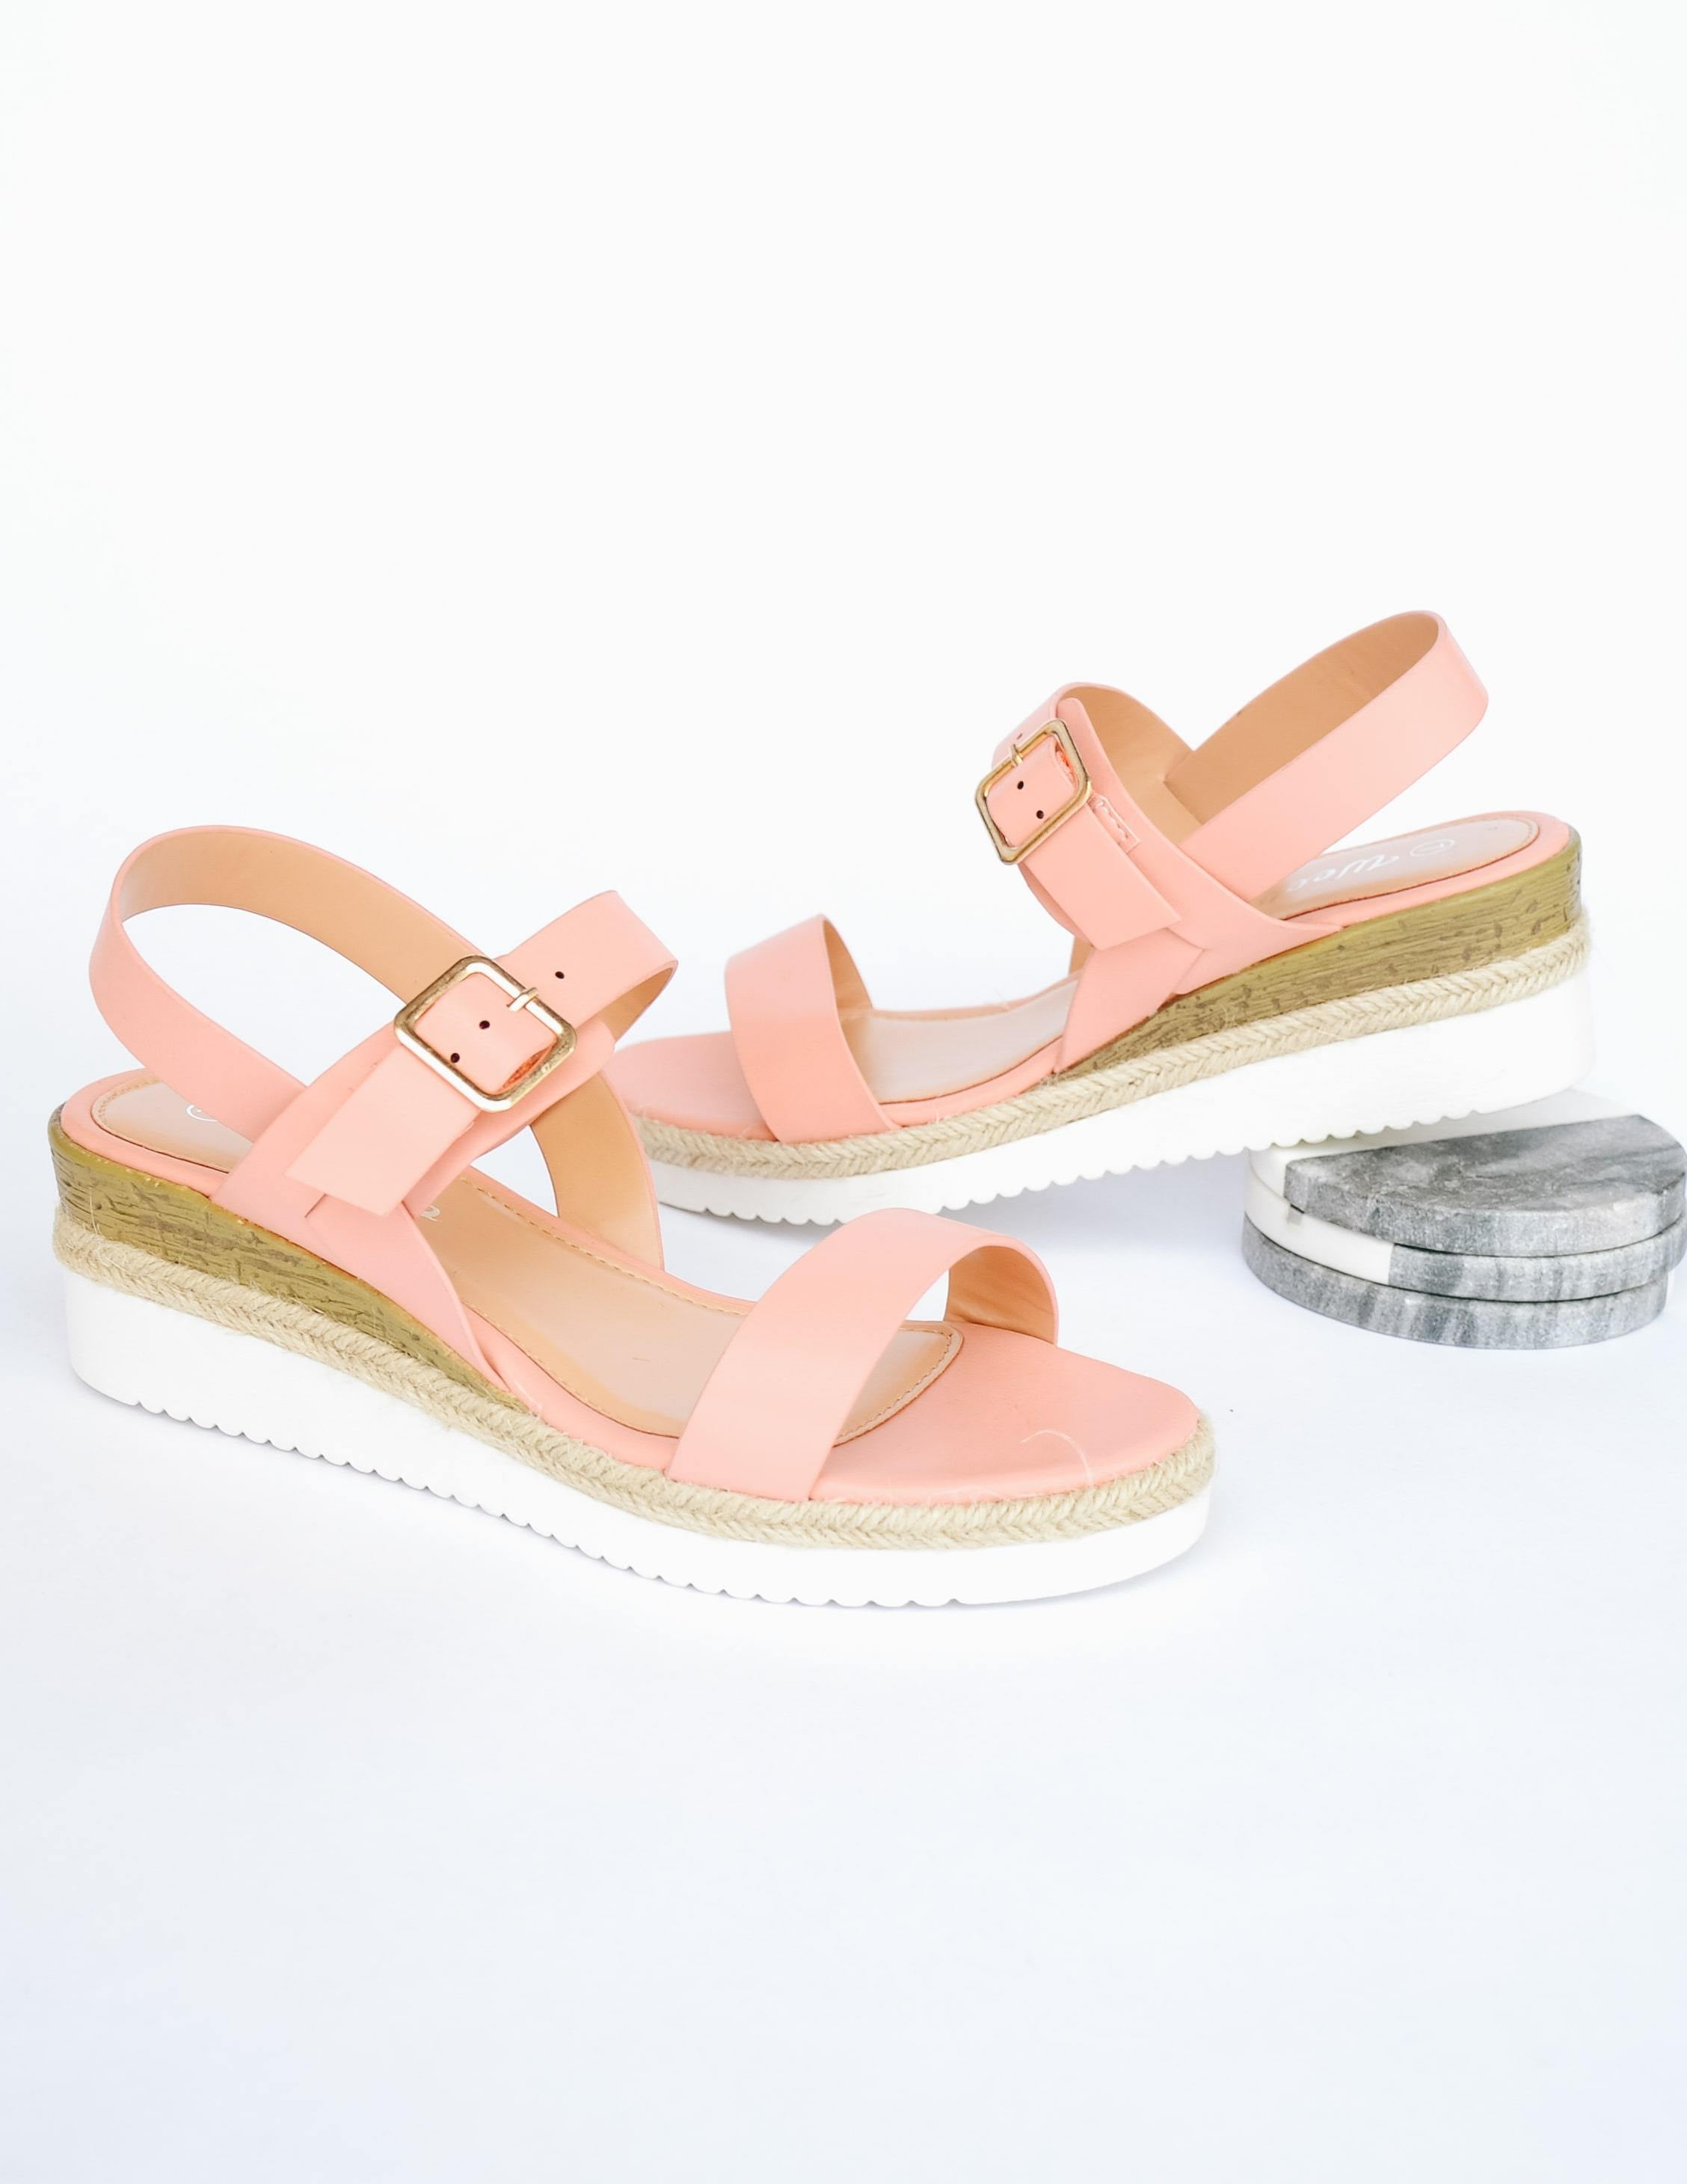 Pink straps on white platform wedge sole with faux wood detail